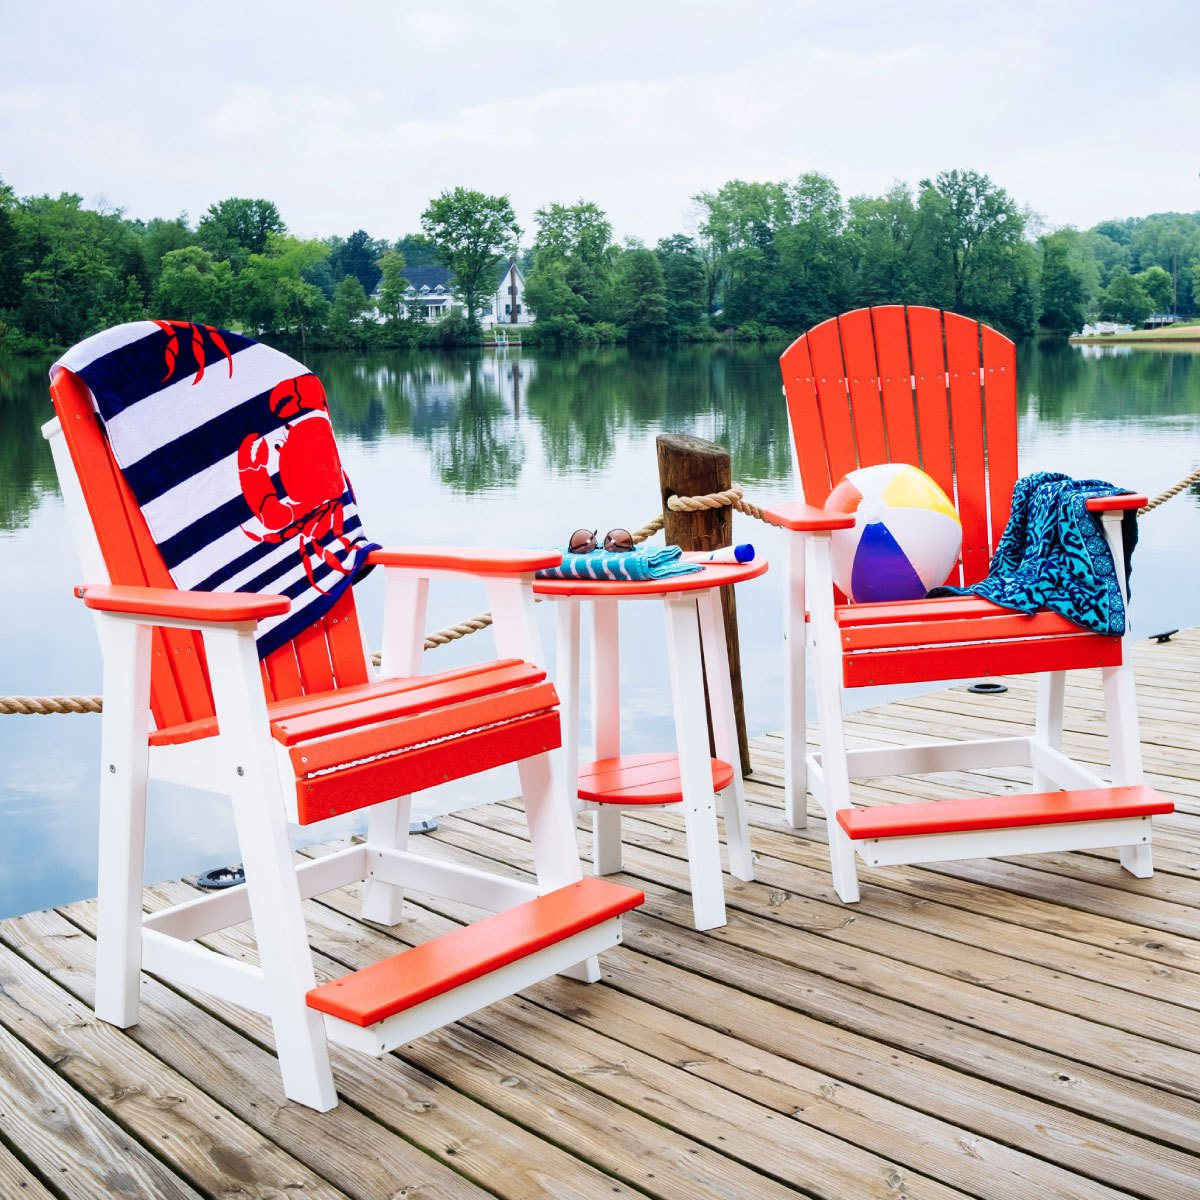 Adirondack Balcony Chairs on Dock